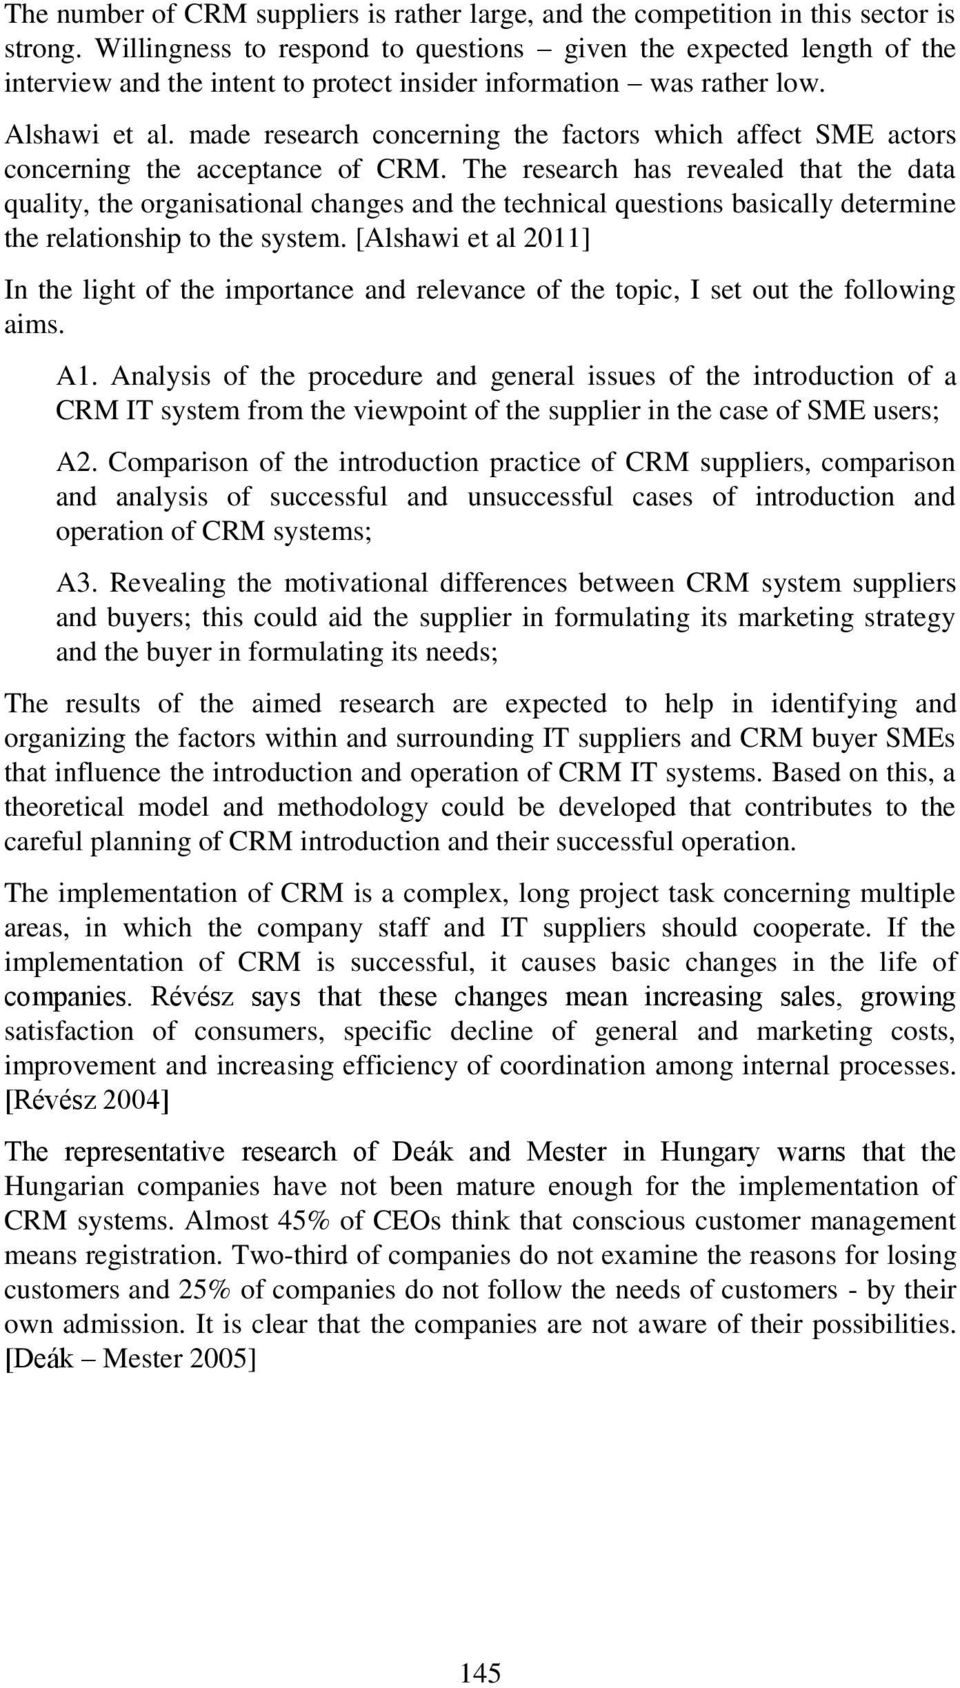 made research concerning the factors which affect SME actors concerning the acceptance of CRM.